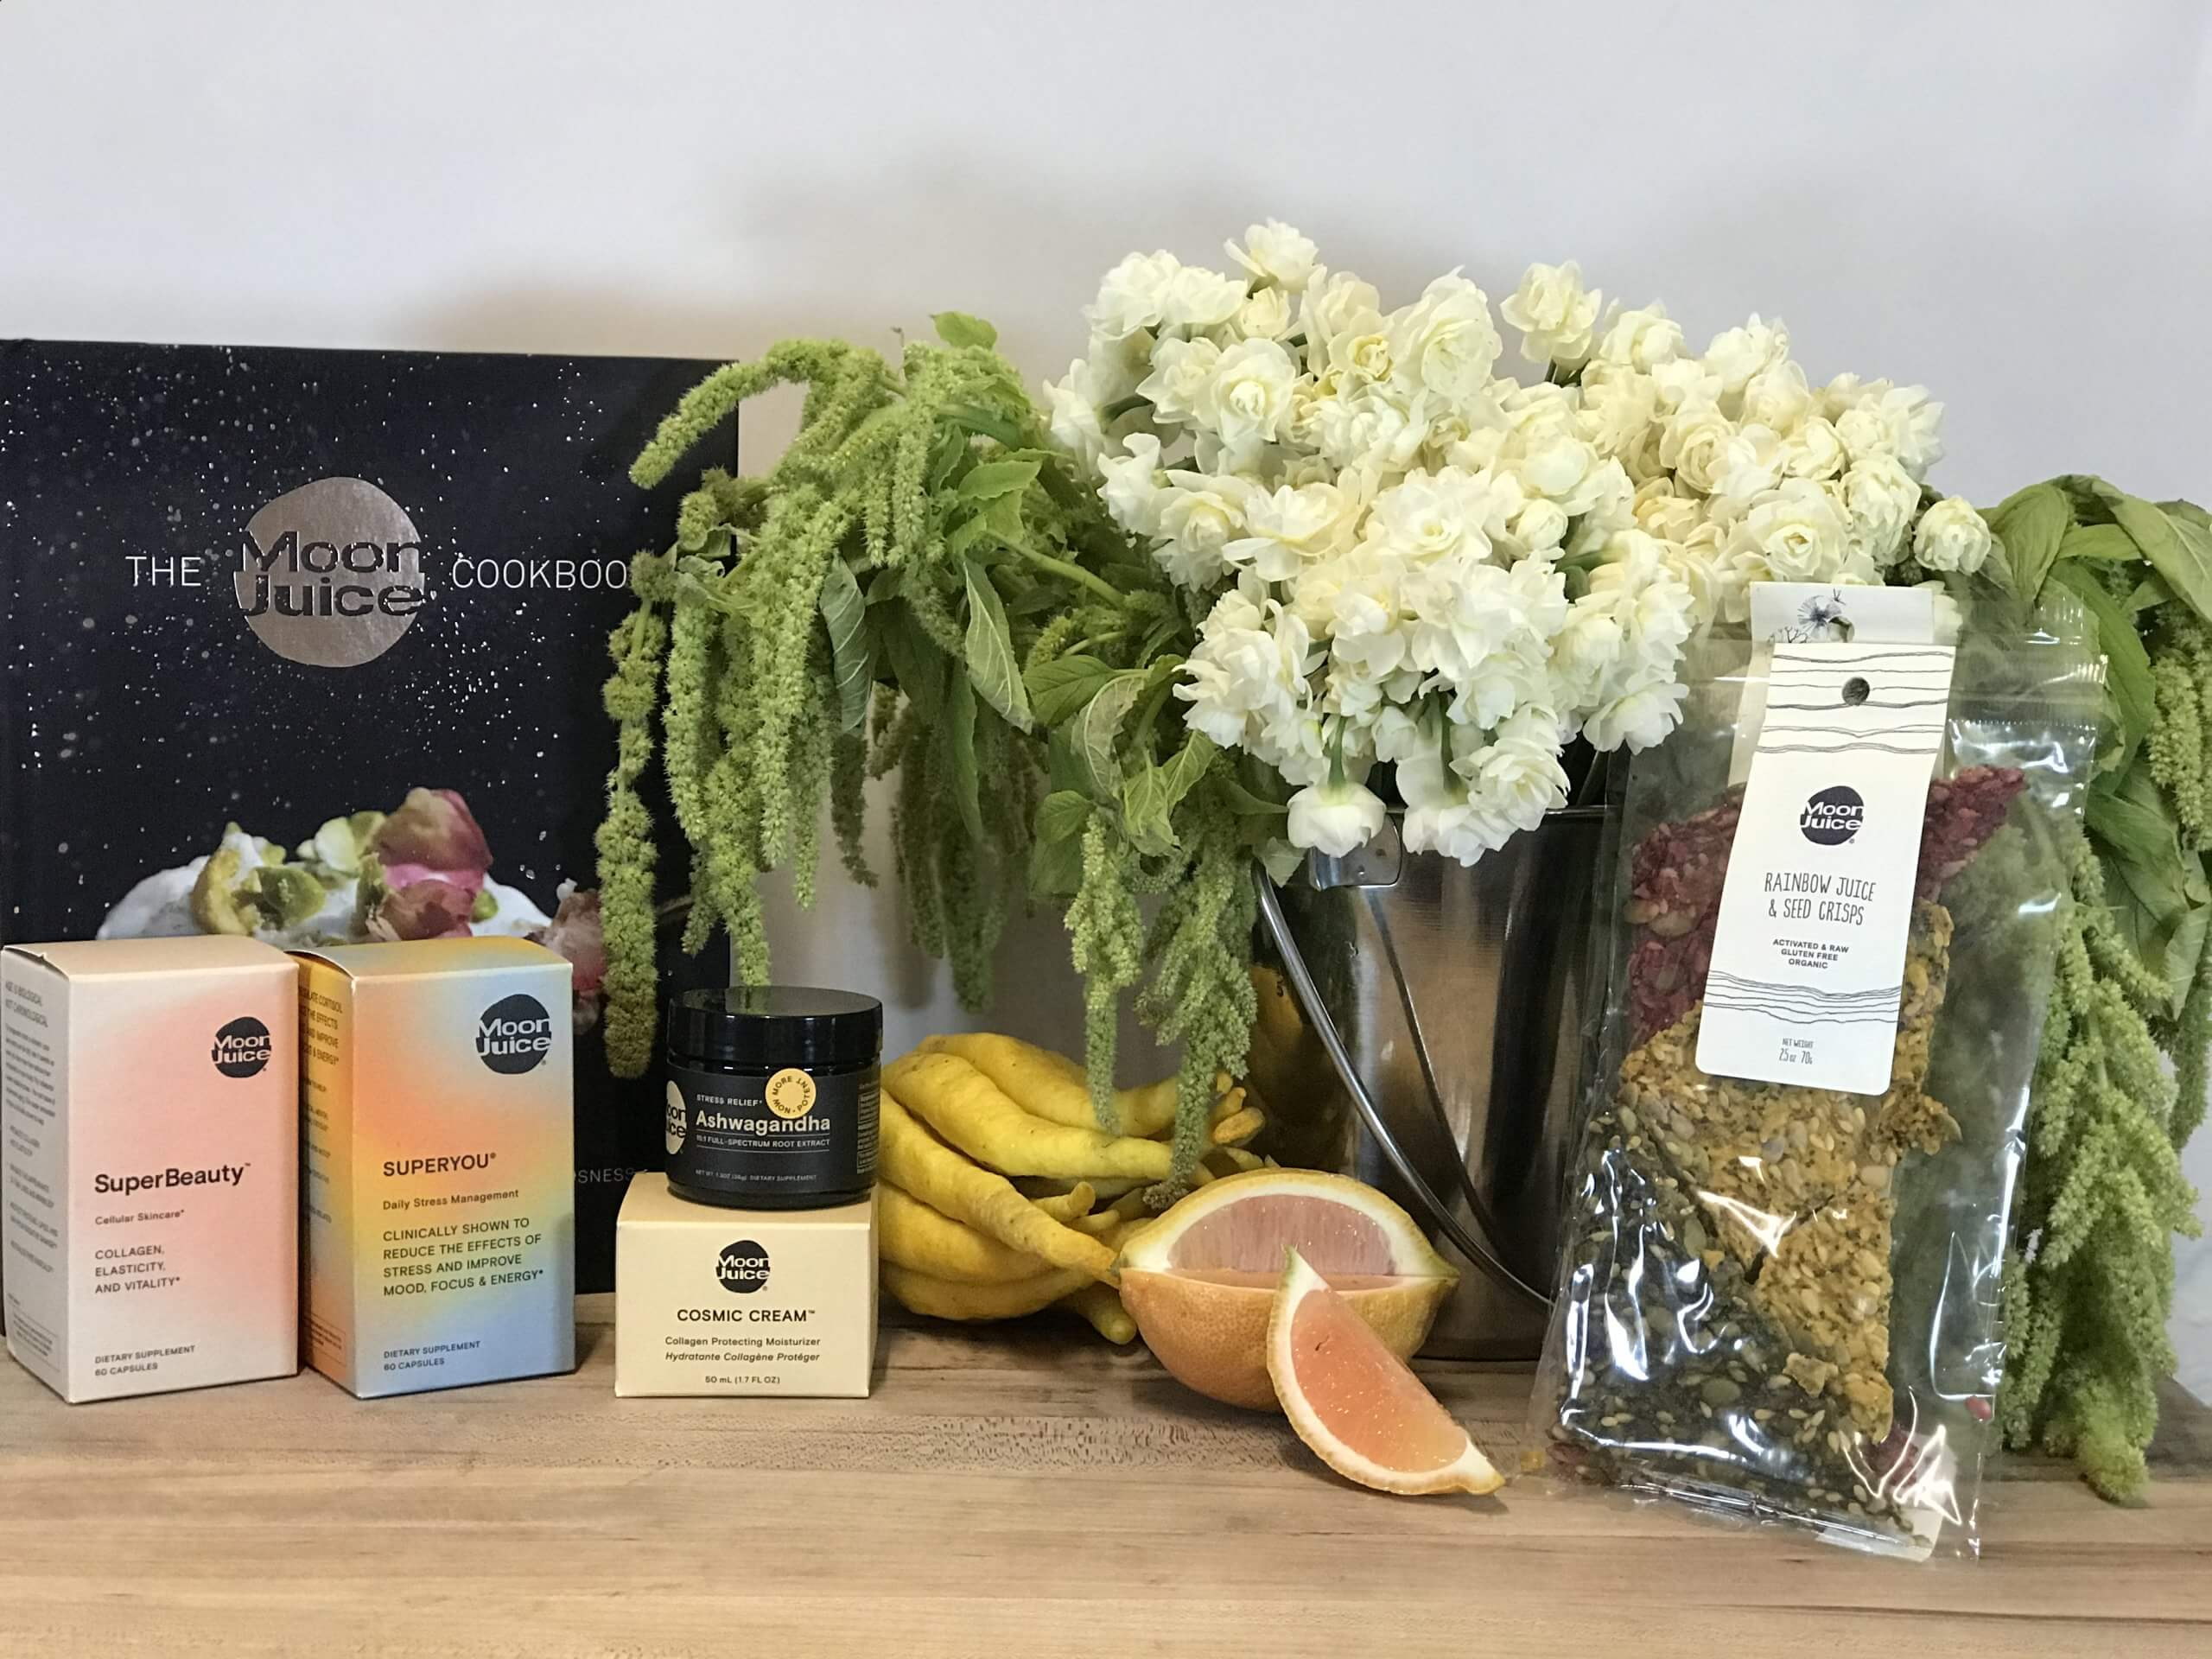 Moon Juice cookbook and other natural products with vase of flowers